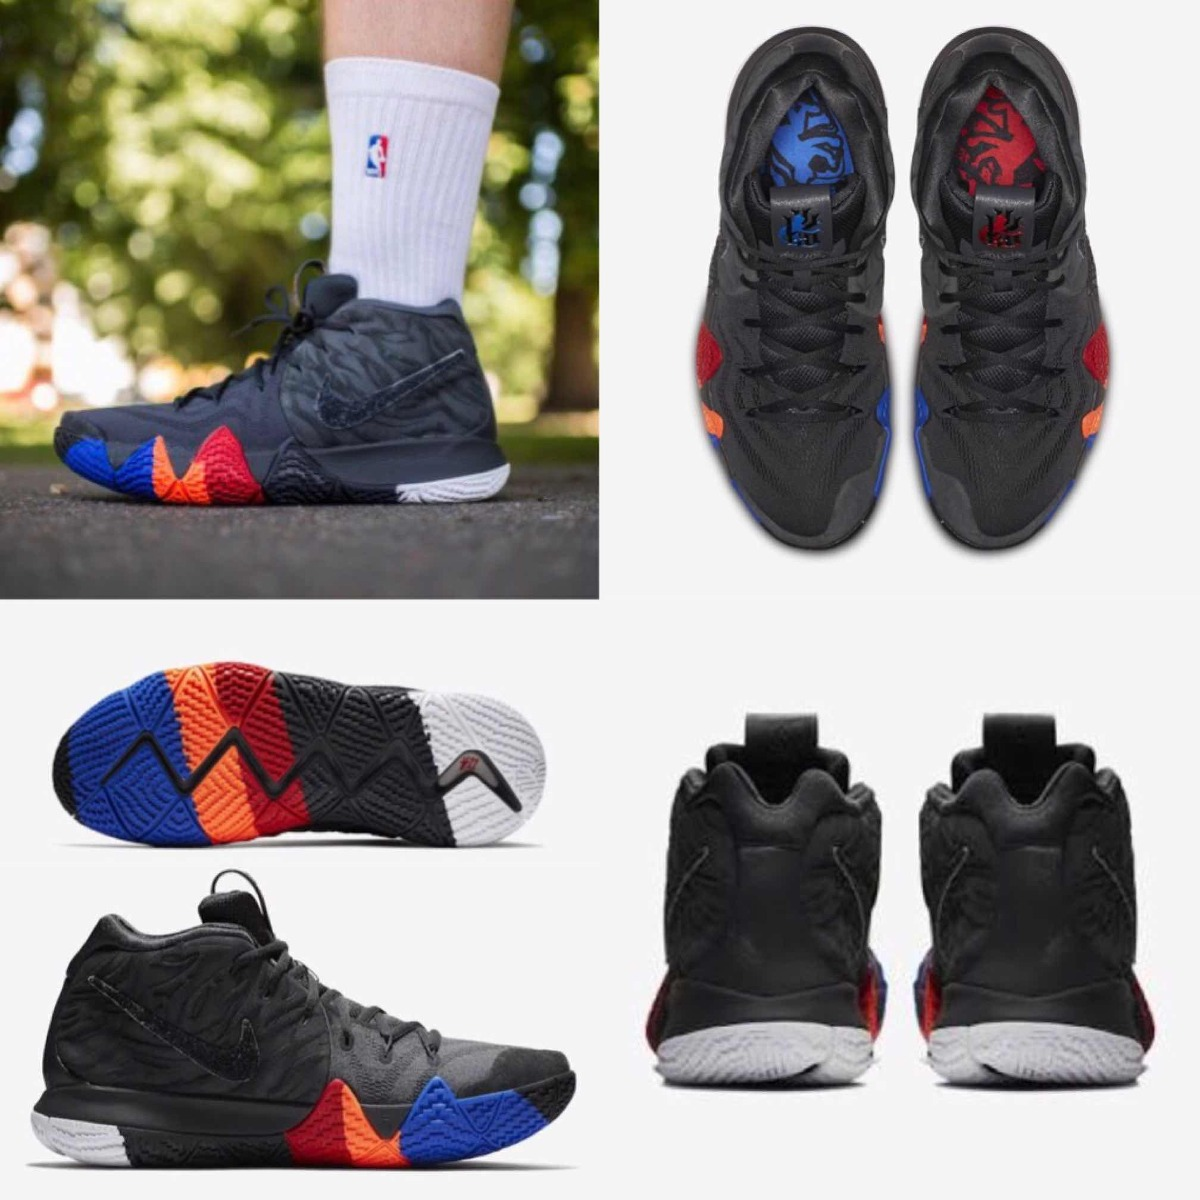 huge sale 1e3c7 e8b30 Tenis Nike Basquet Kyrie 4 // Year Of The Monkey #25 Al 31 /